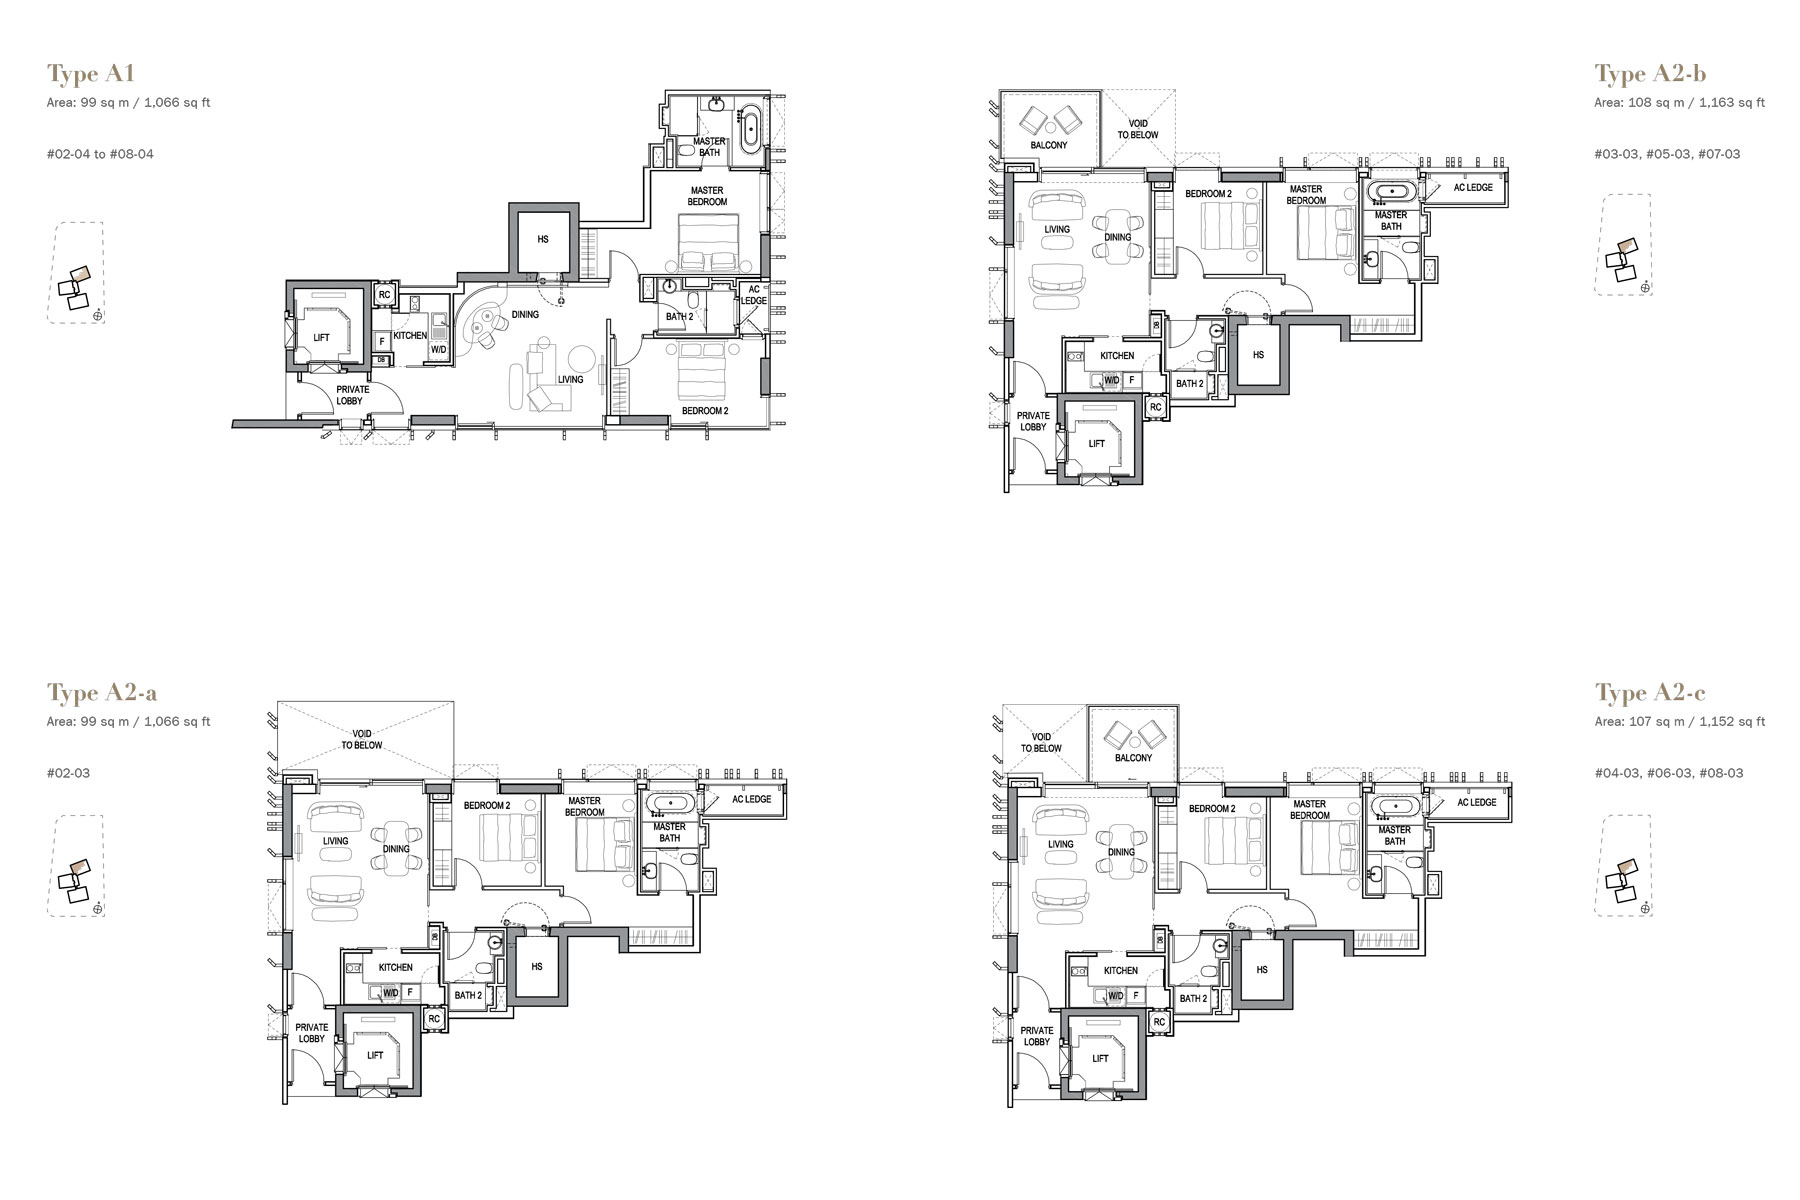 3 orchard by the Park 2 bedroom floorplan by jessicasiow.com